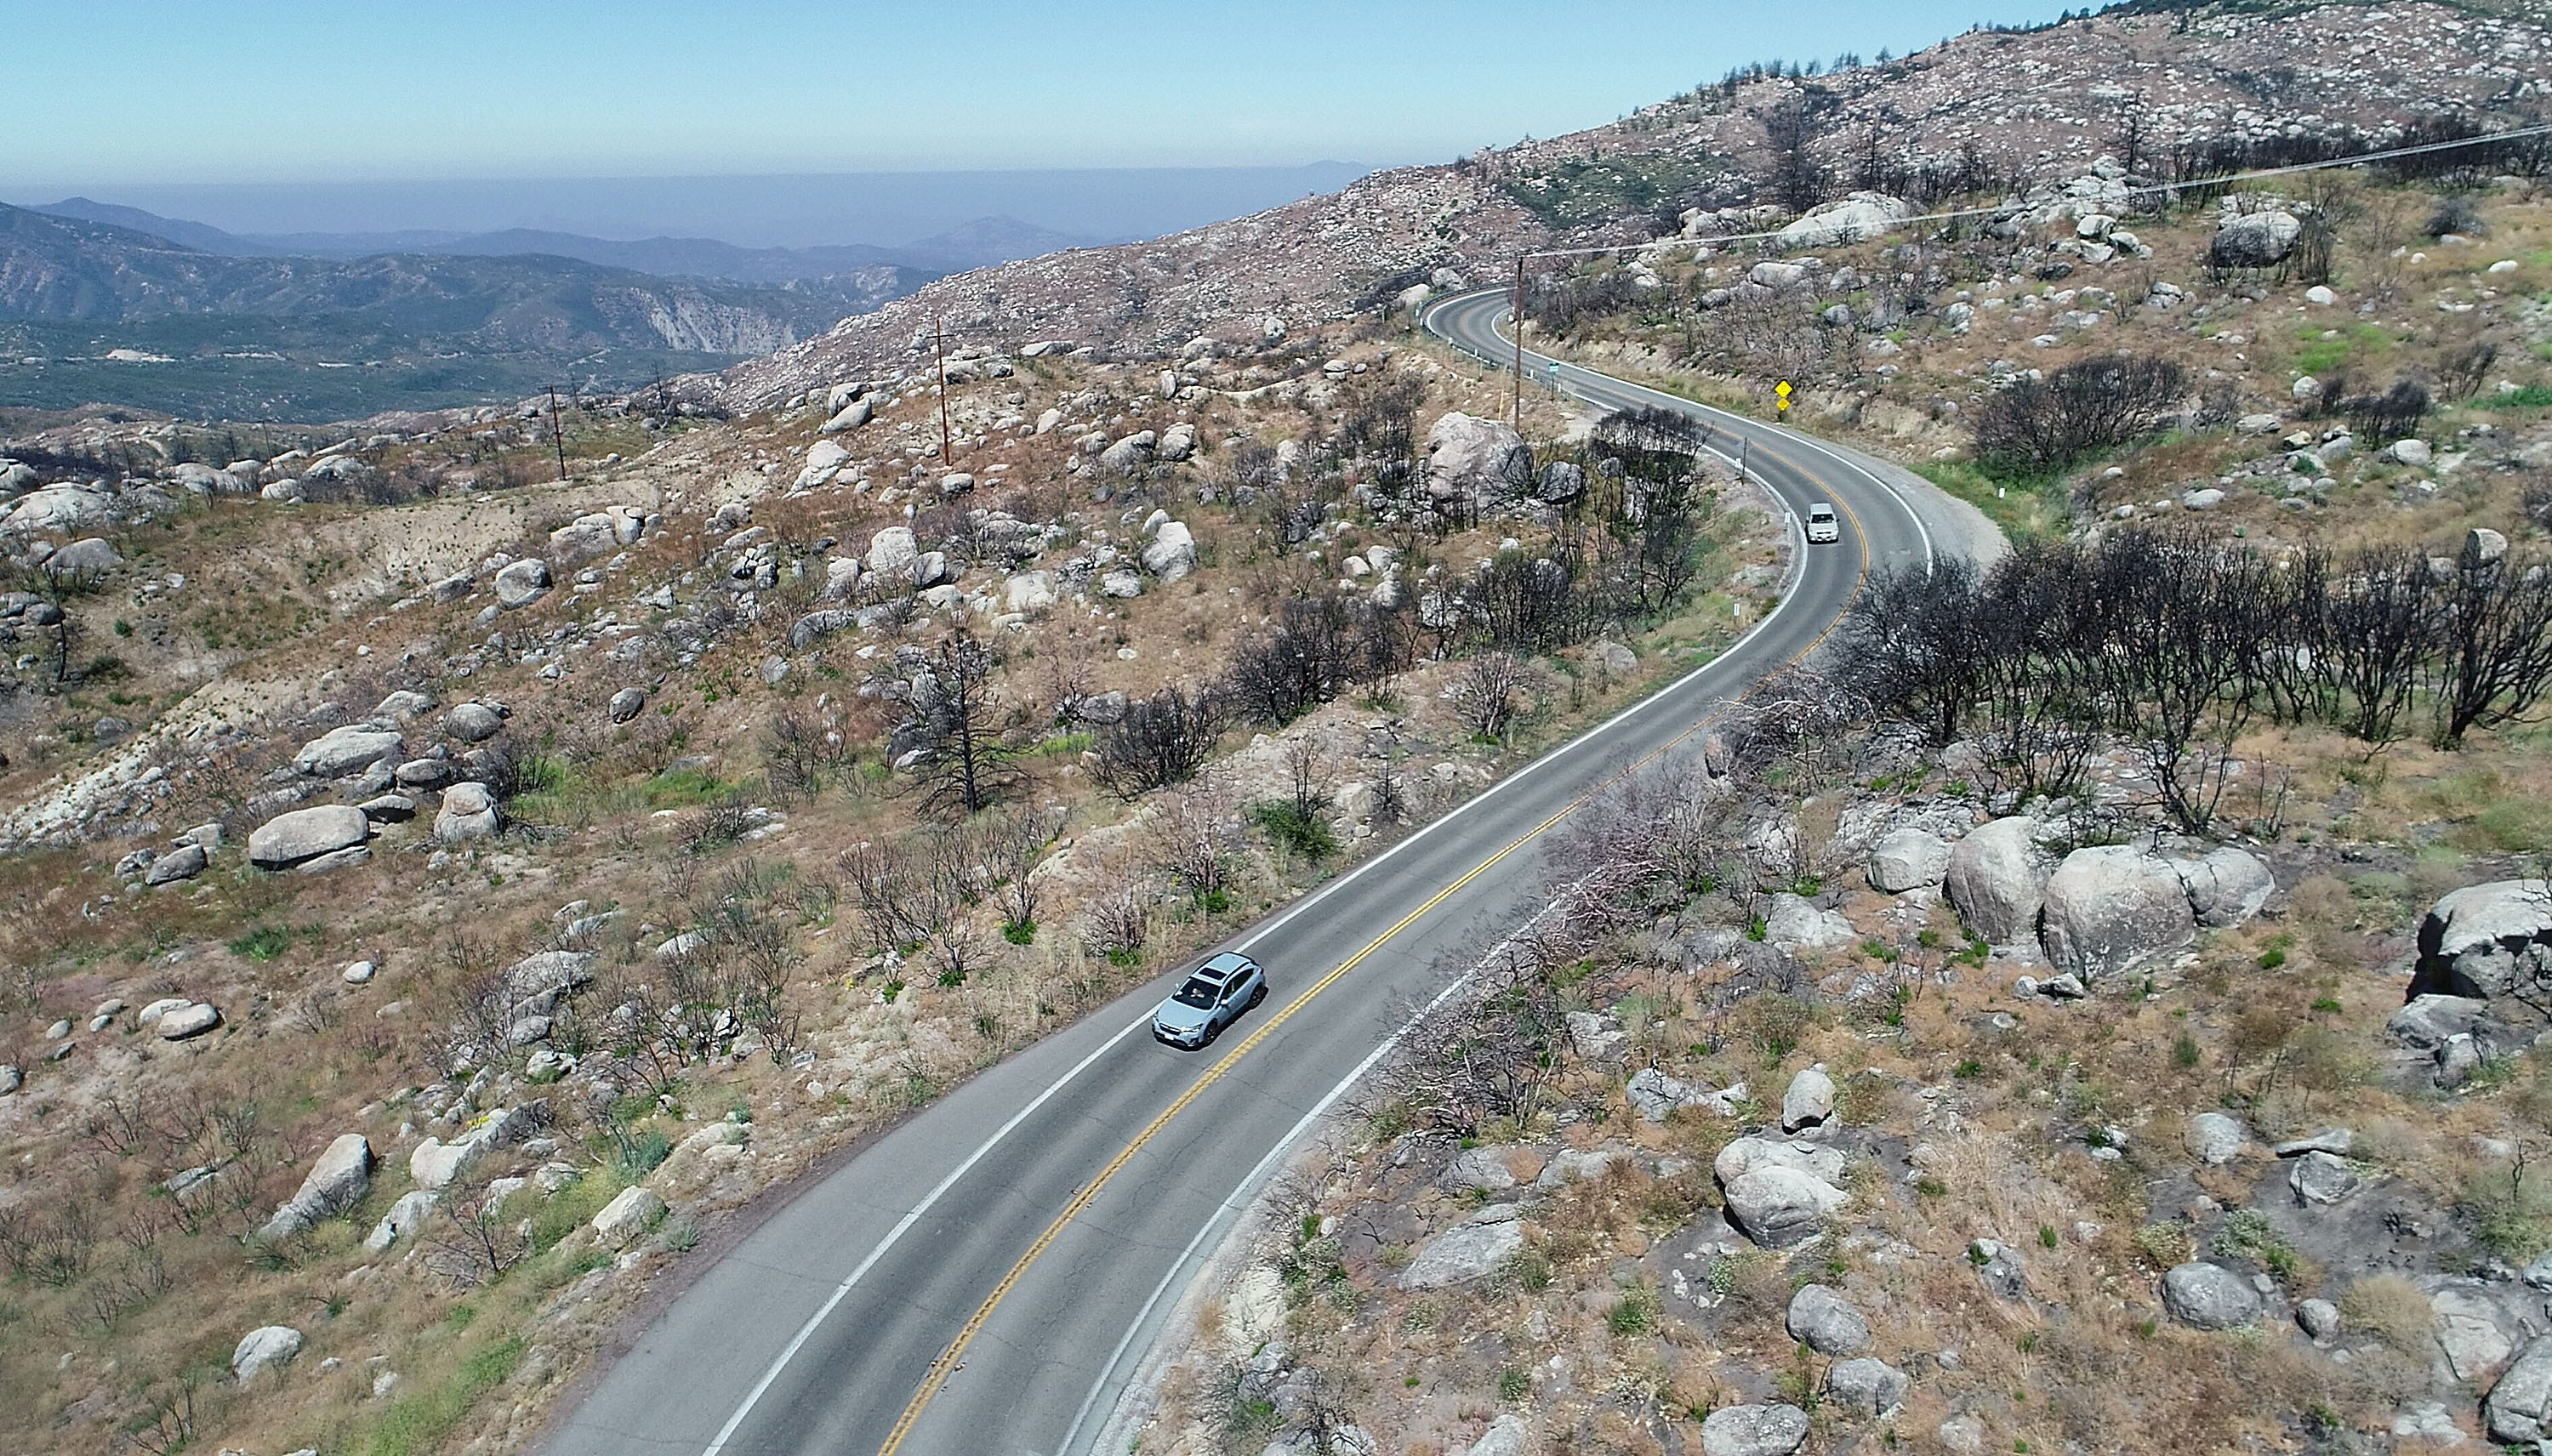 Curvy, steep and only two lanes, Highway 243 would be an evacuation route for Idyllwild, California, but a washout has left part of the road closed.